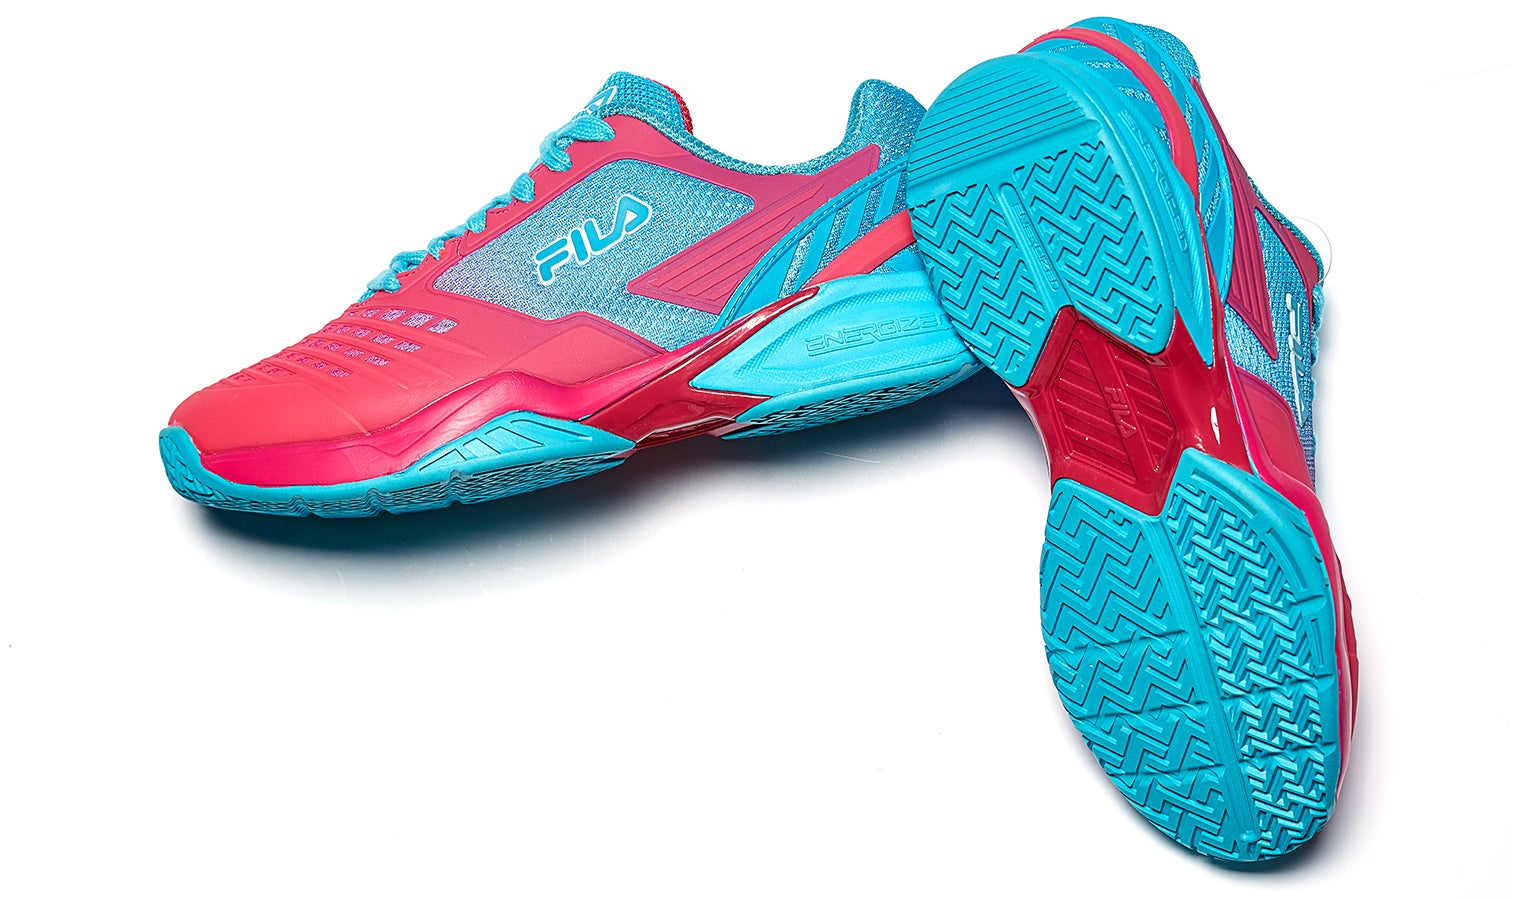 523be368a6c9 Tennis Warehouse - Fila Axilus Energized Women s Shoe Review